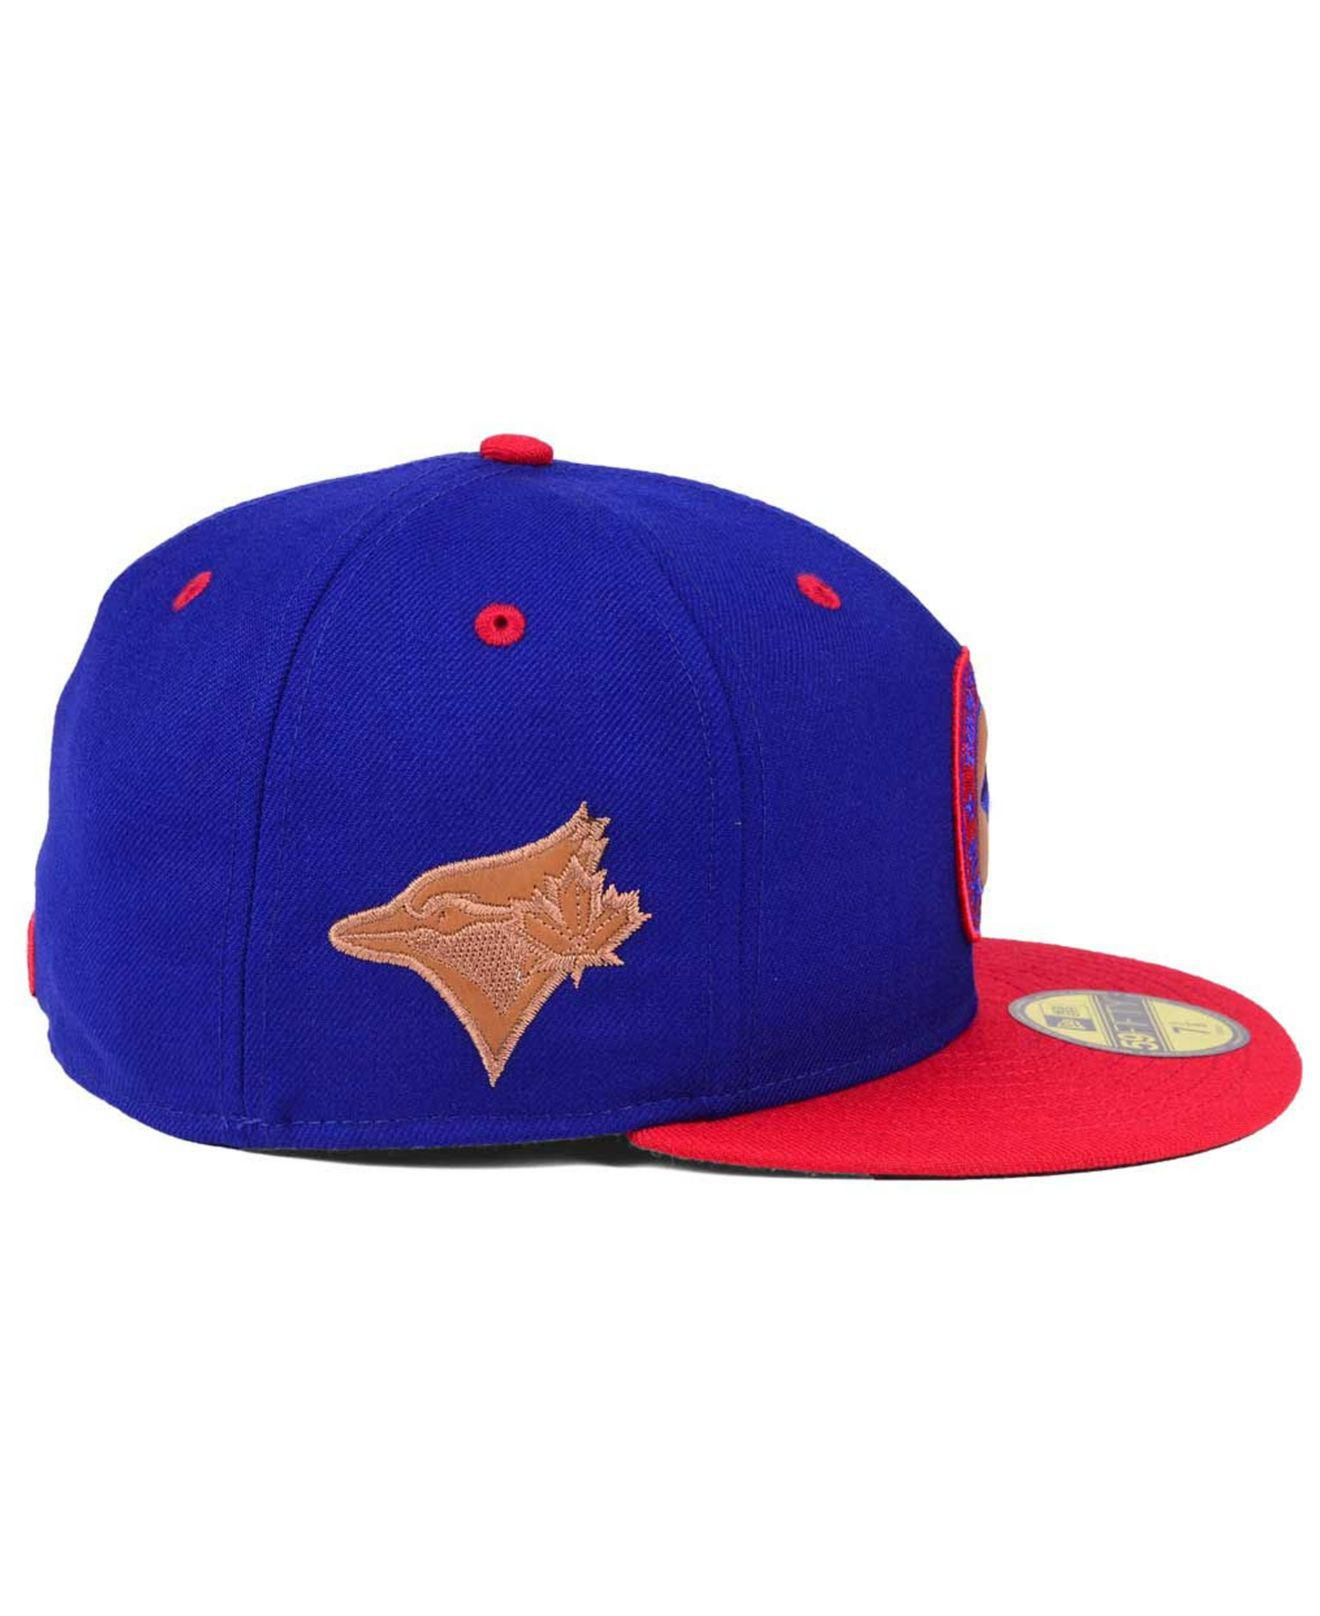 huge discount df293 6d489 Lyst - KTZ Toronto Blue Jays X Wilson Circle Patch 59fifty Fitted ...